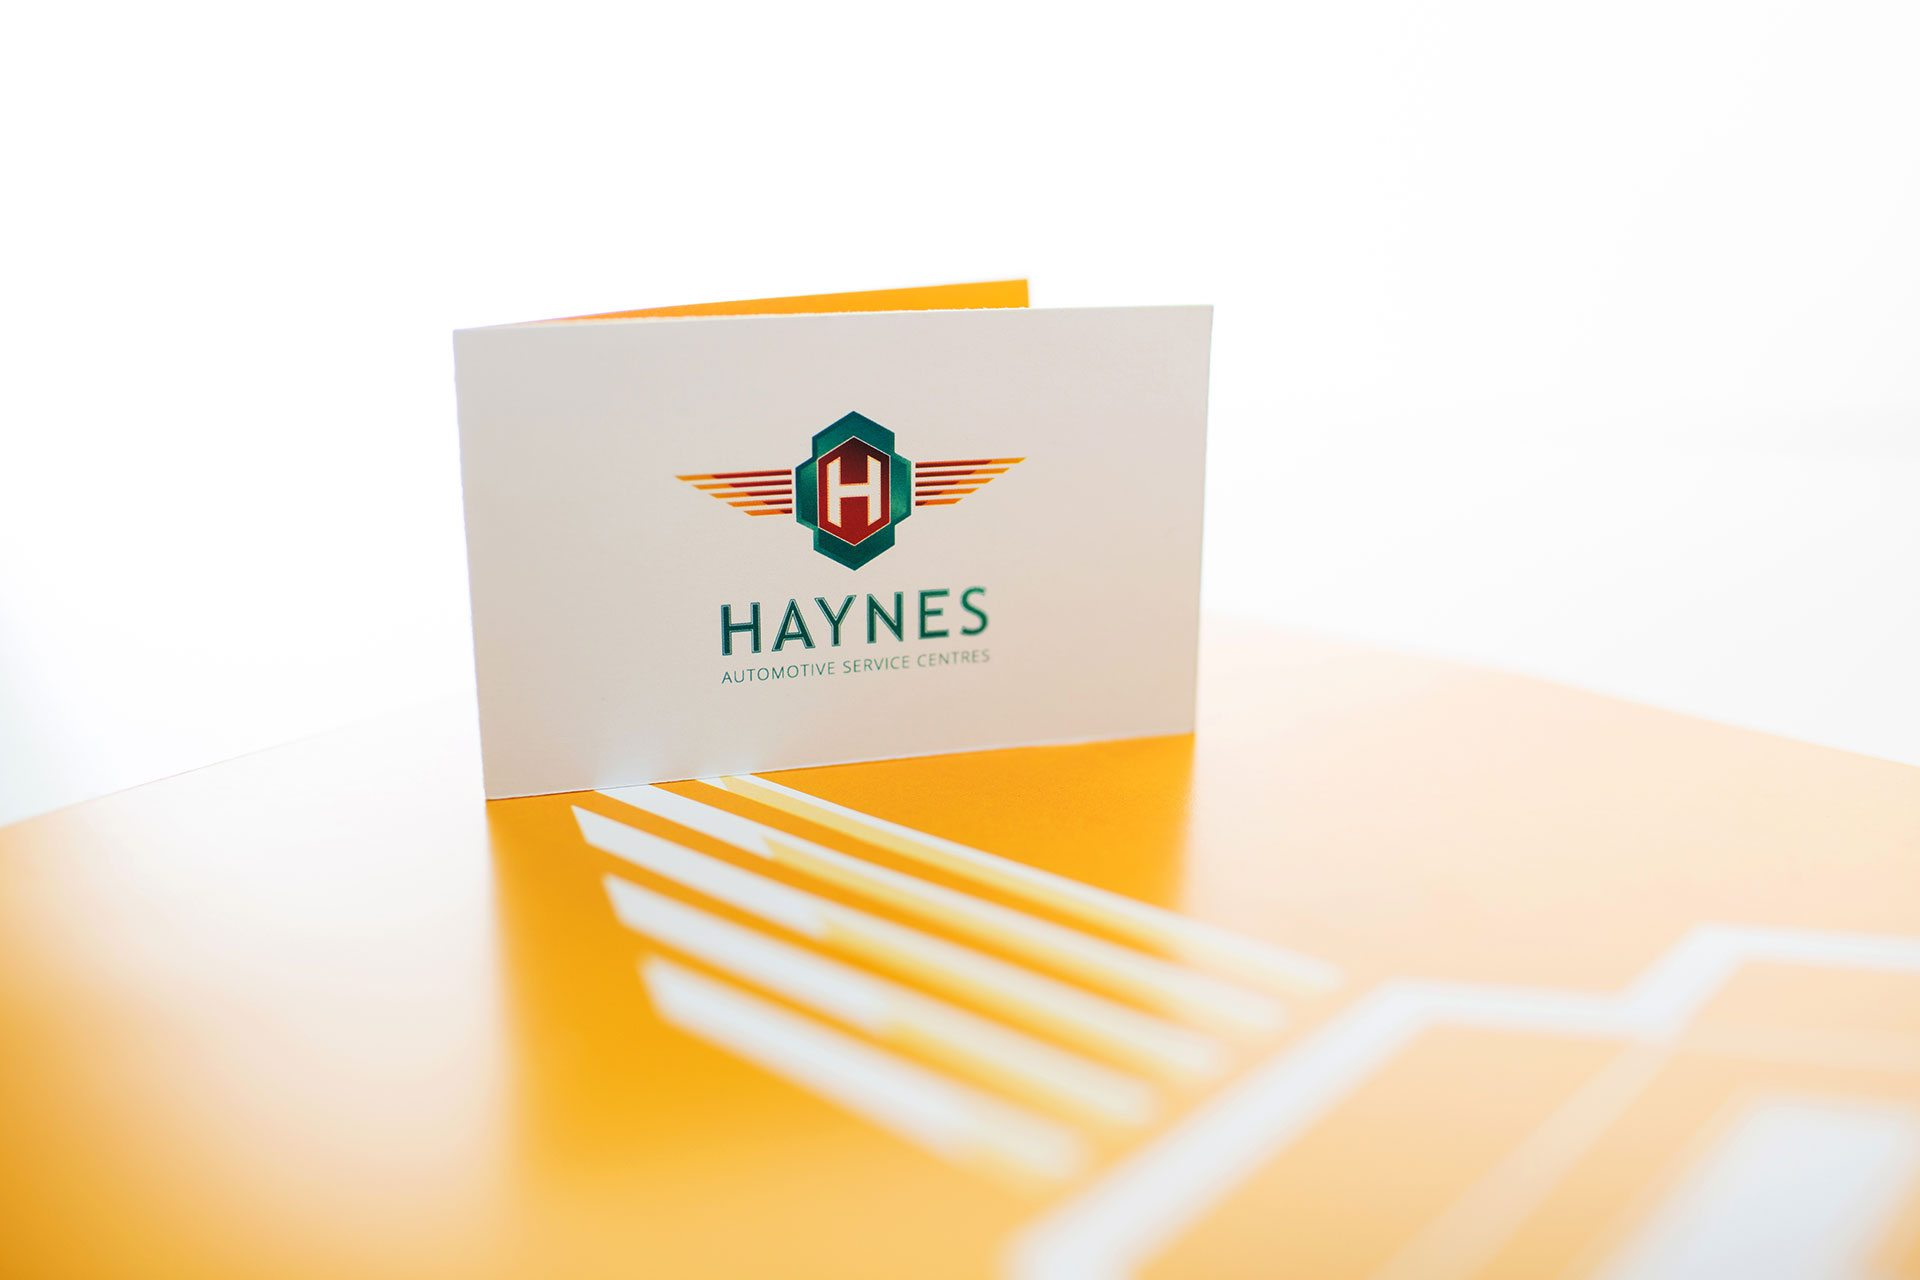 Oomph_Creative_Agency_Haynes_Automotive_Centres_Identity_Creation_Name_Branding_Logo_Photography